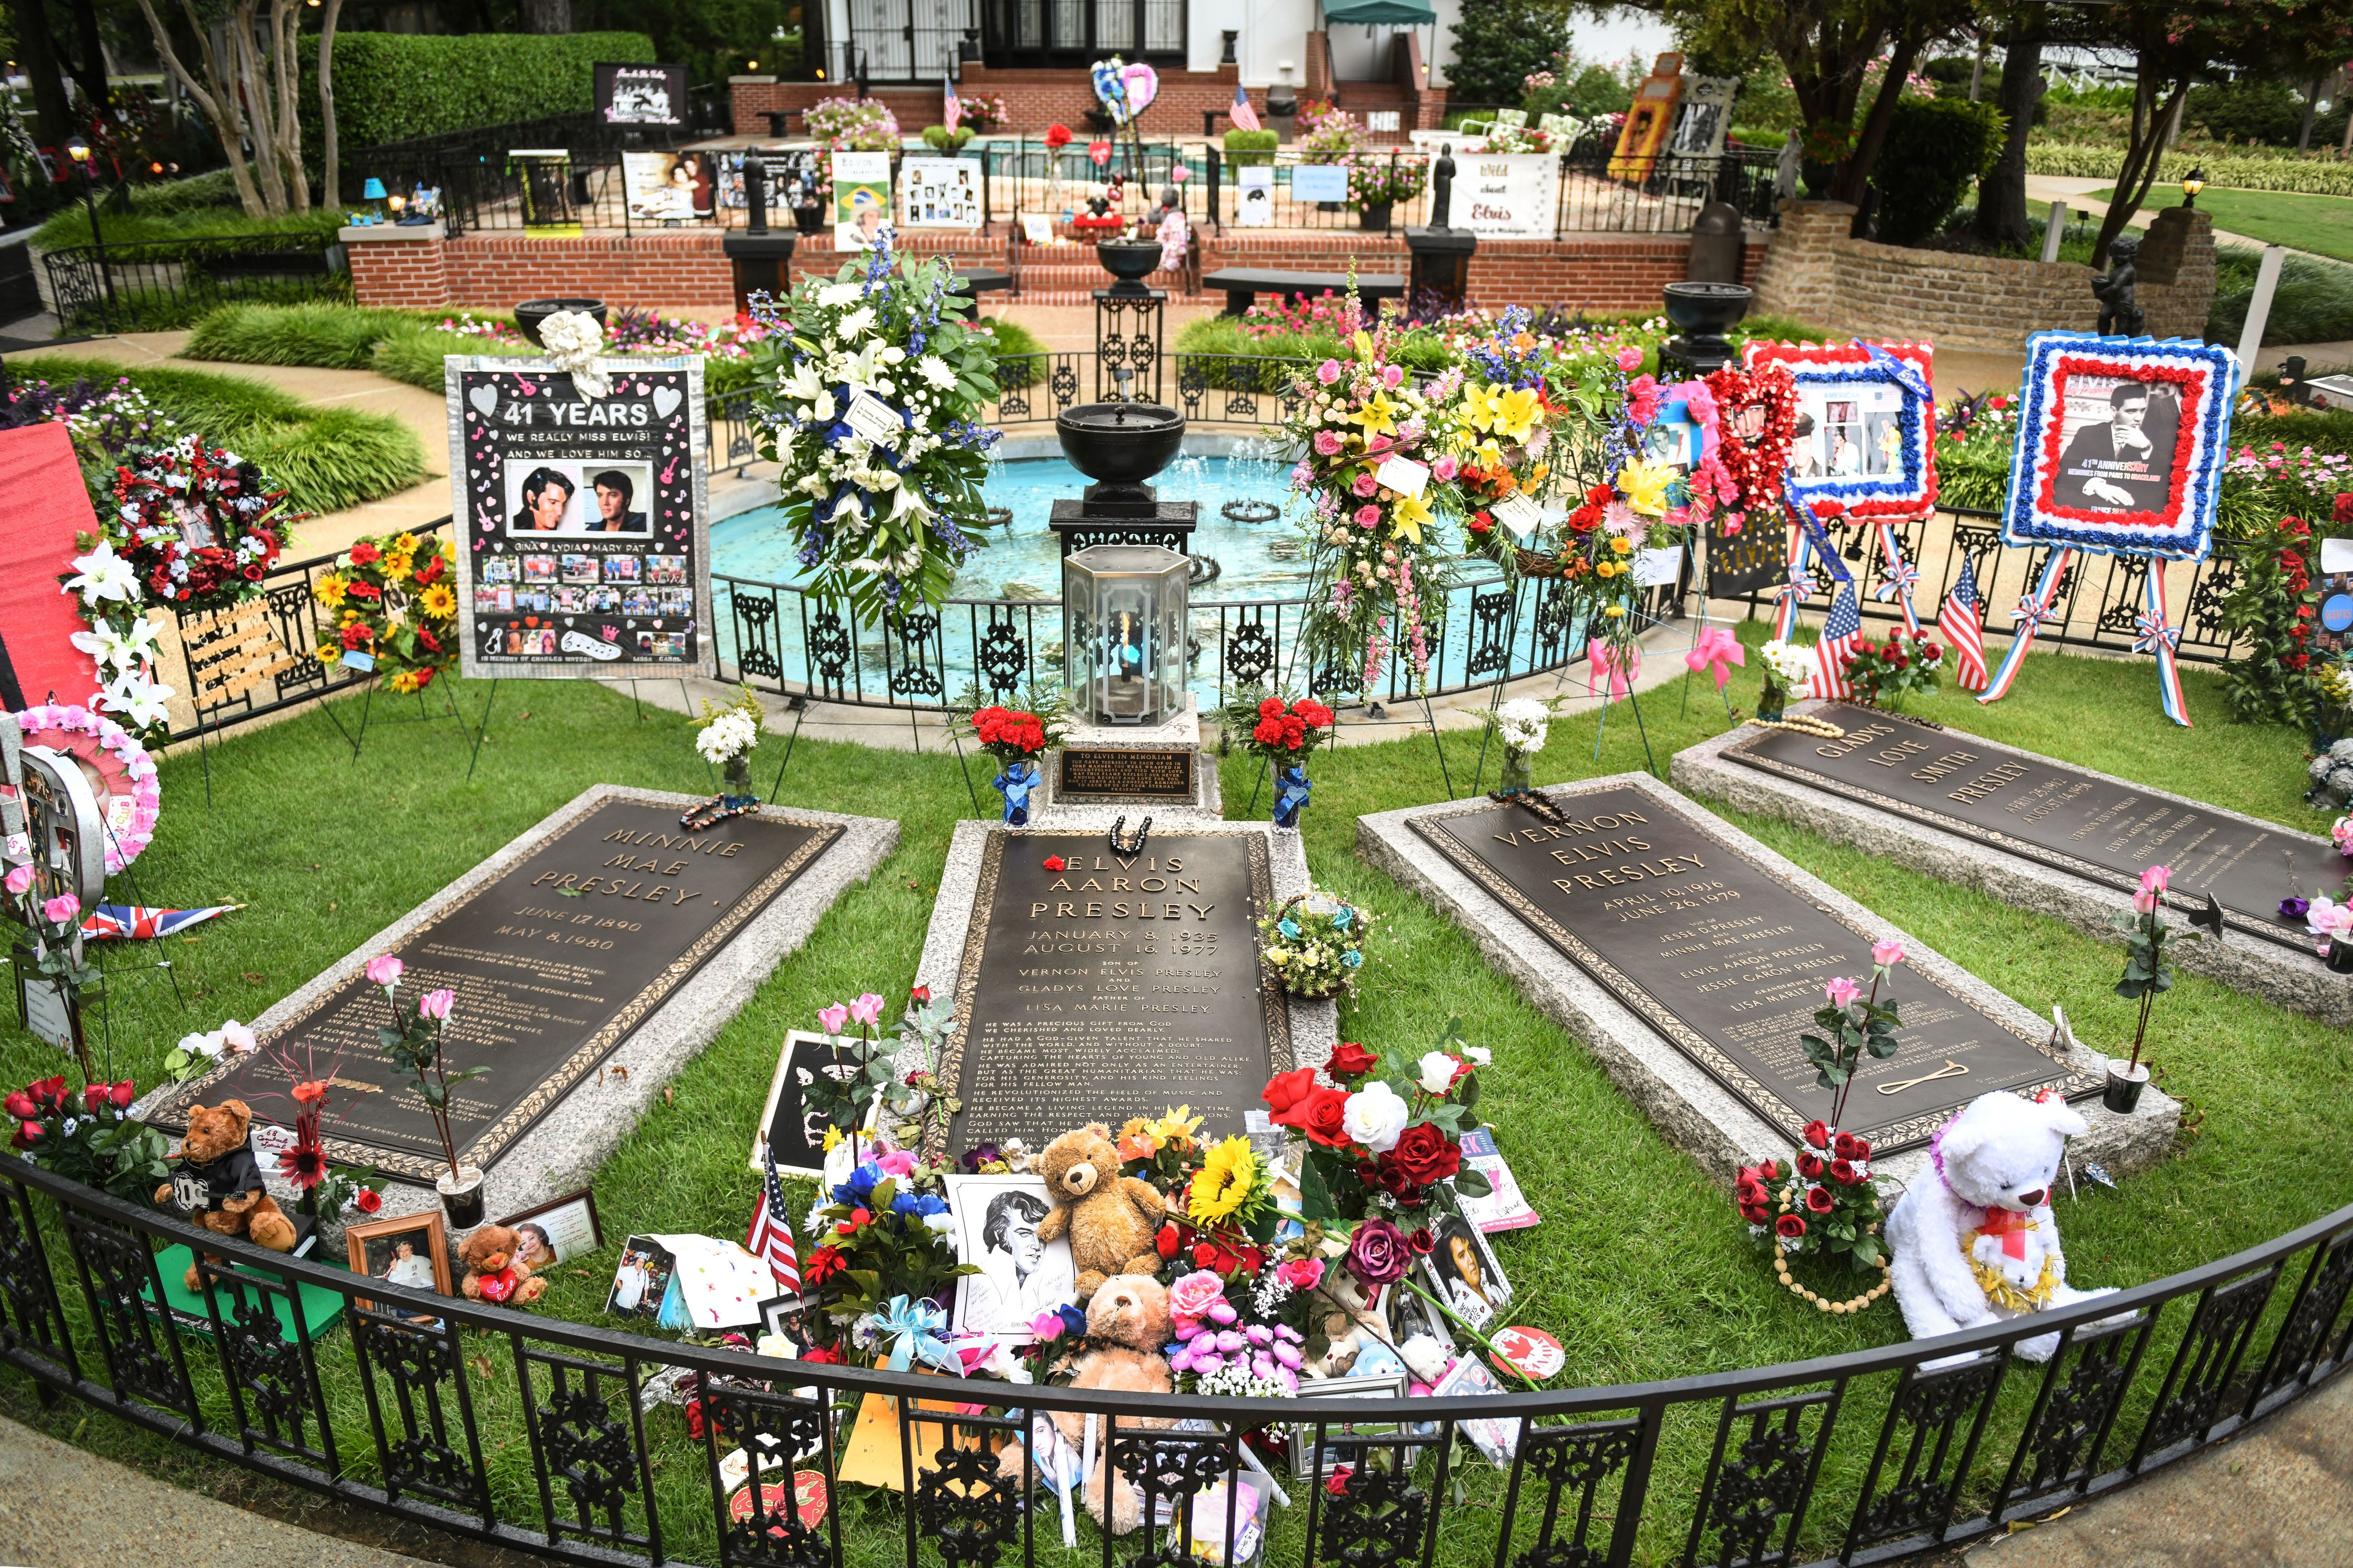 The Best Elvis Week 2019 Events at Graceland